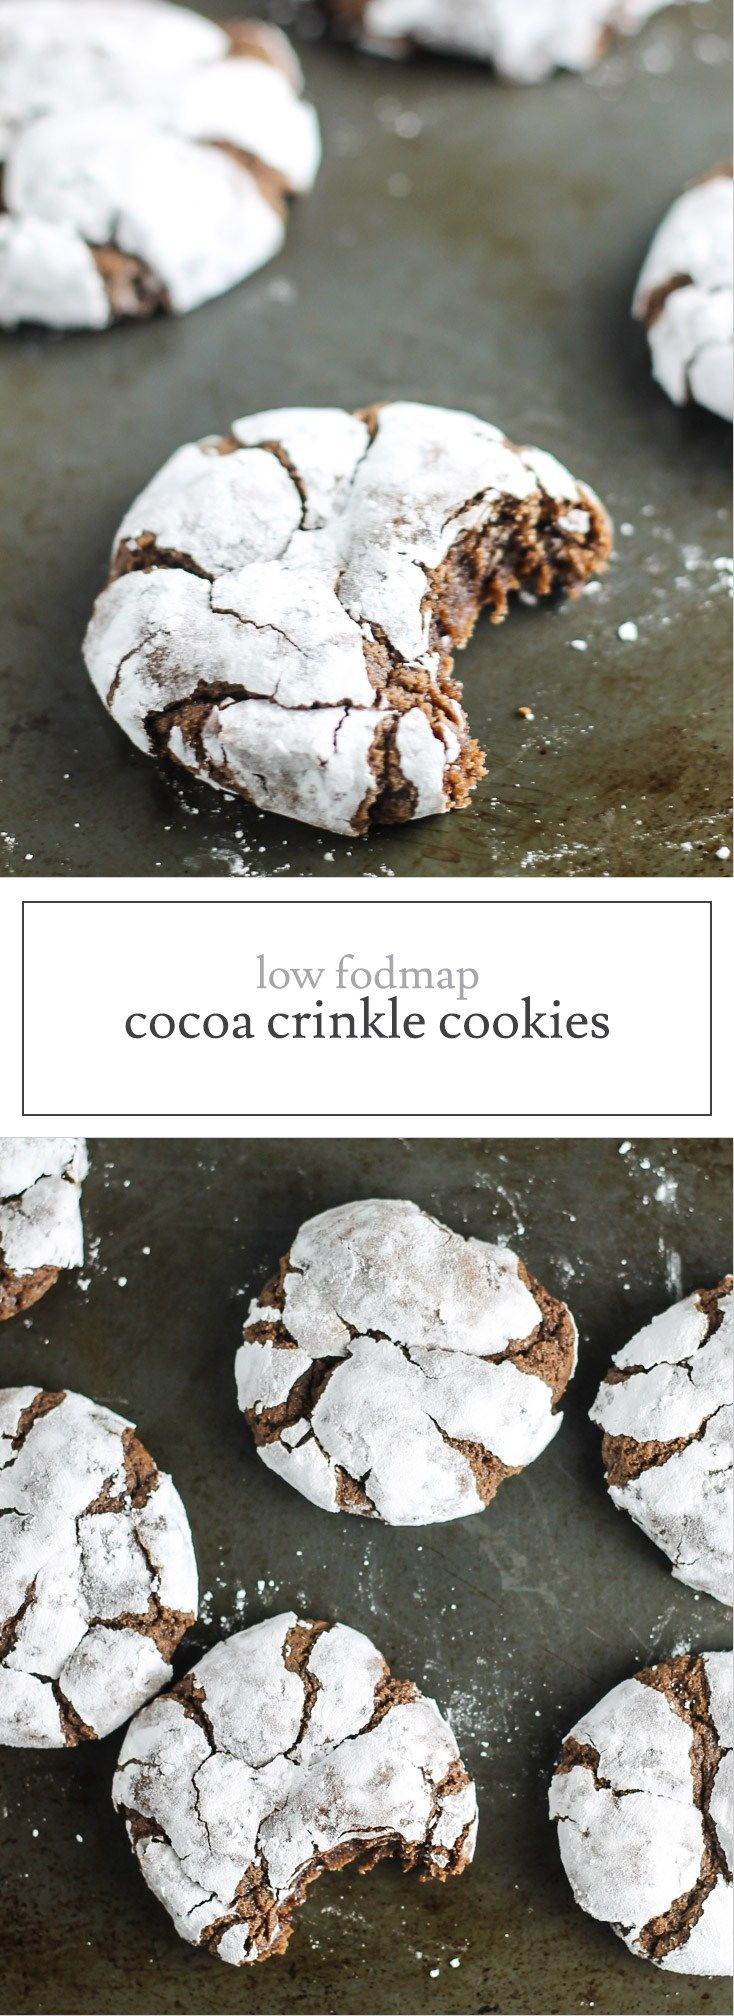 Gluten-free, dairy-free and pure deliciousness!, these Low FODMAP Cocoa Crinkle Cookies are SOO good - no one will know they're allergen friendly!